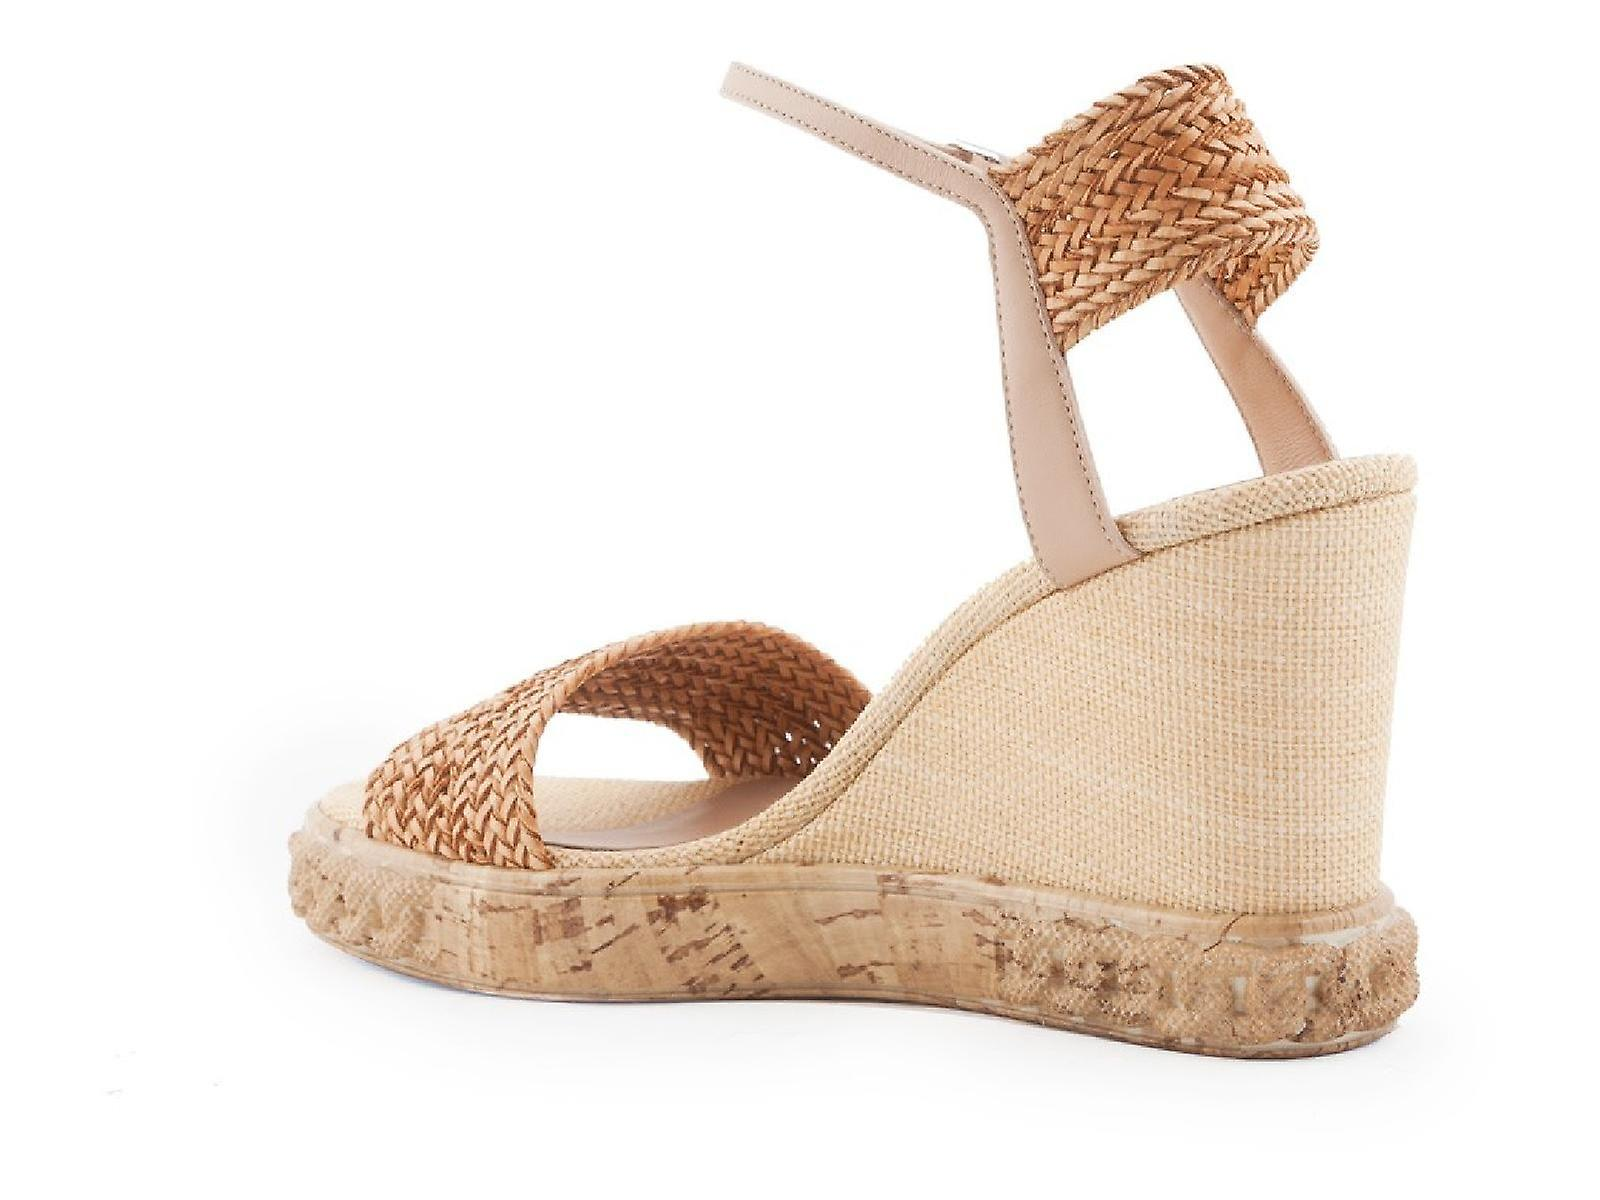 Casadei high heels wedges sandals in leather and straw